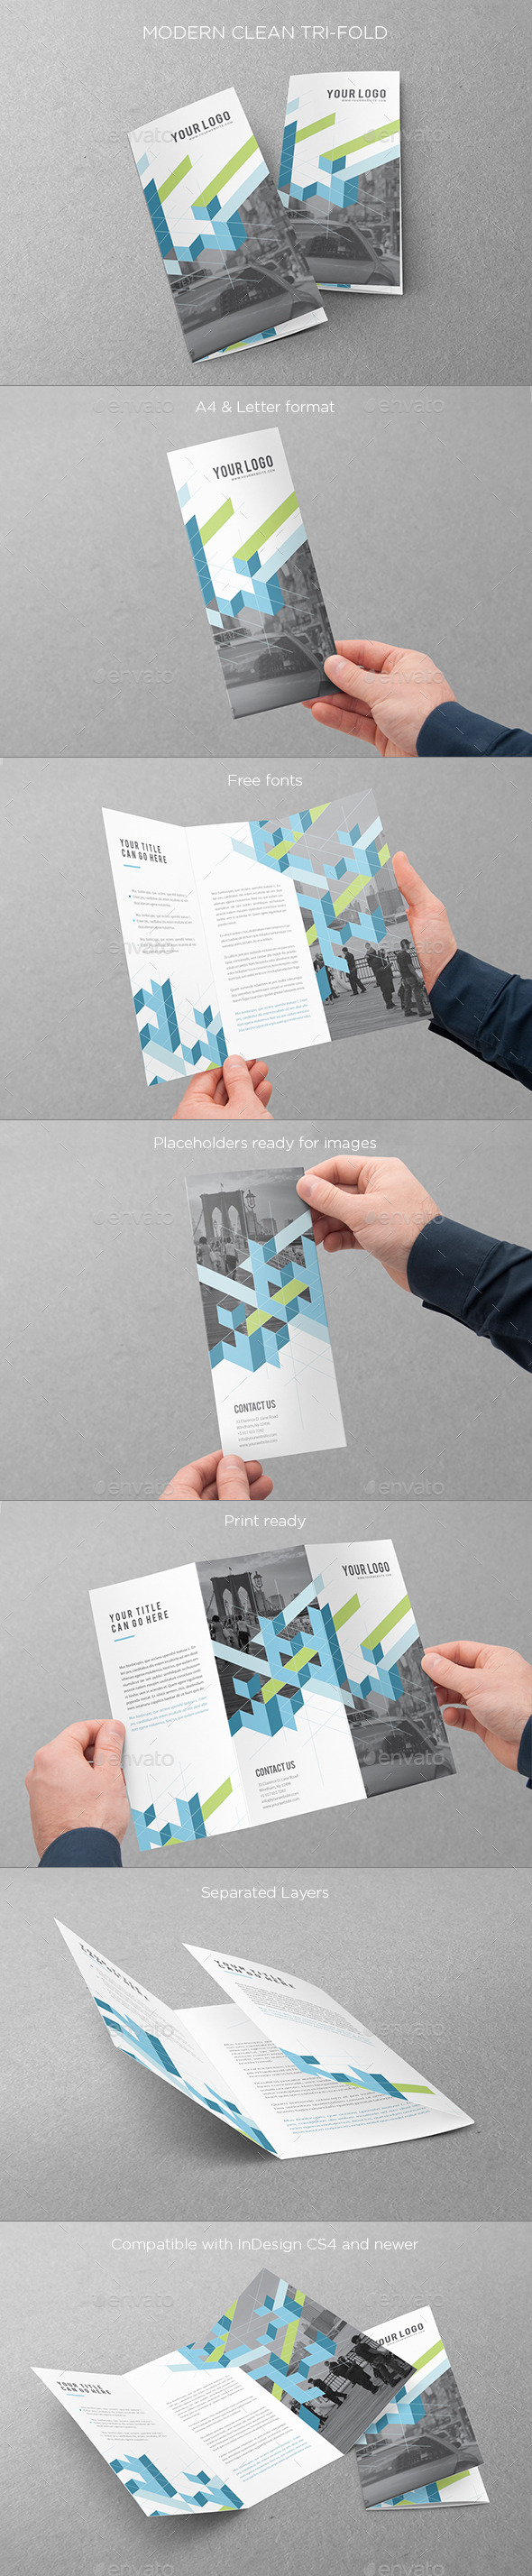 GraphicRiver Modern Clean Trifold 10243378